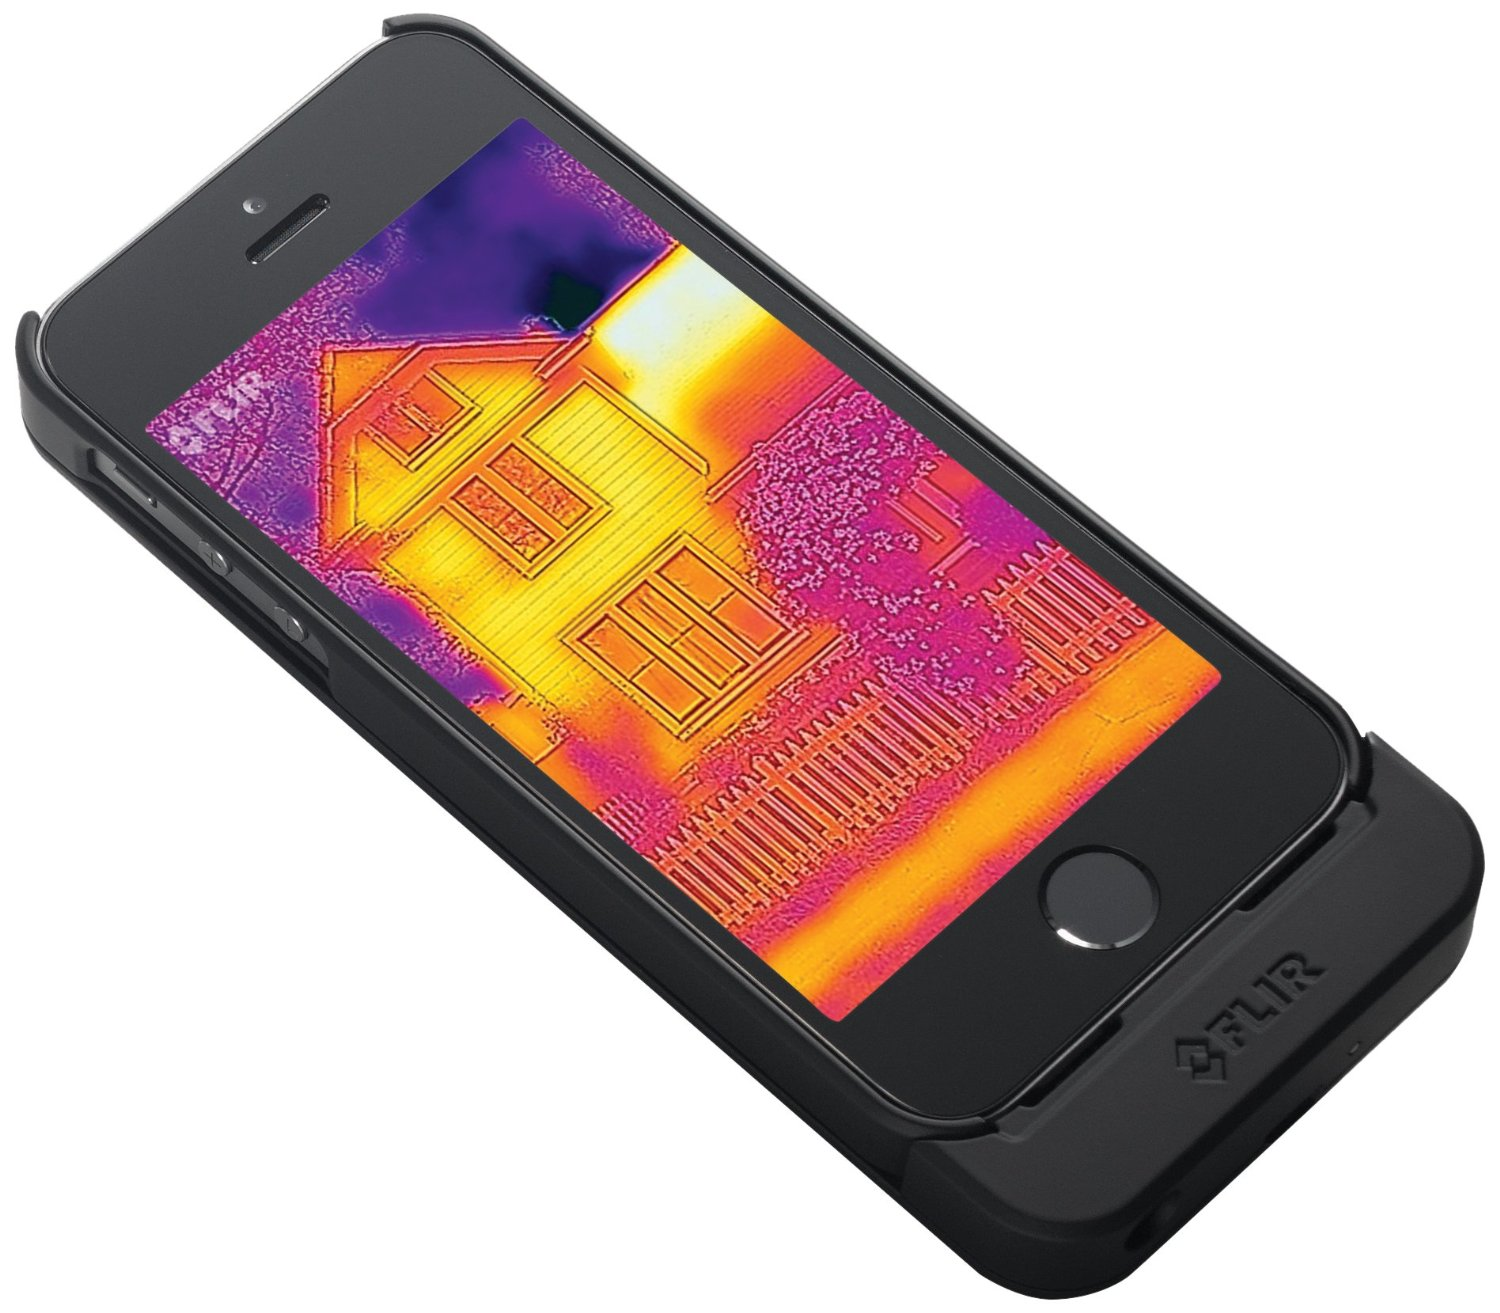 6 Night Vision & Thermal Imaging Solutions for iPhone -